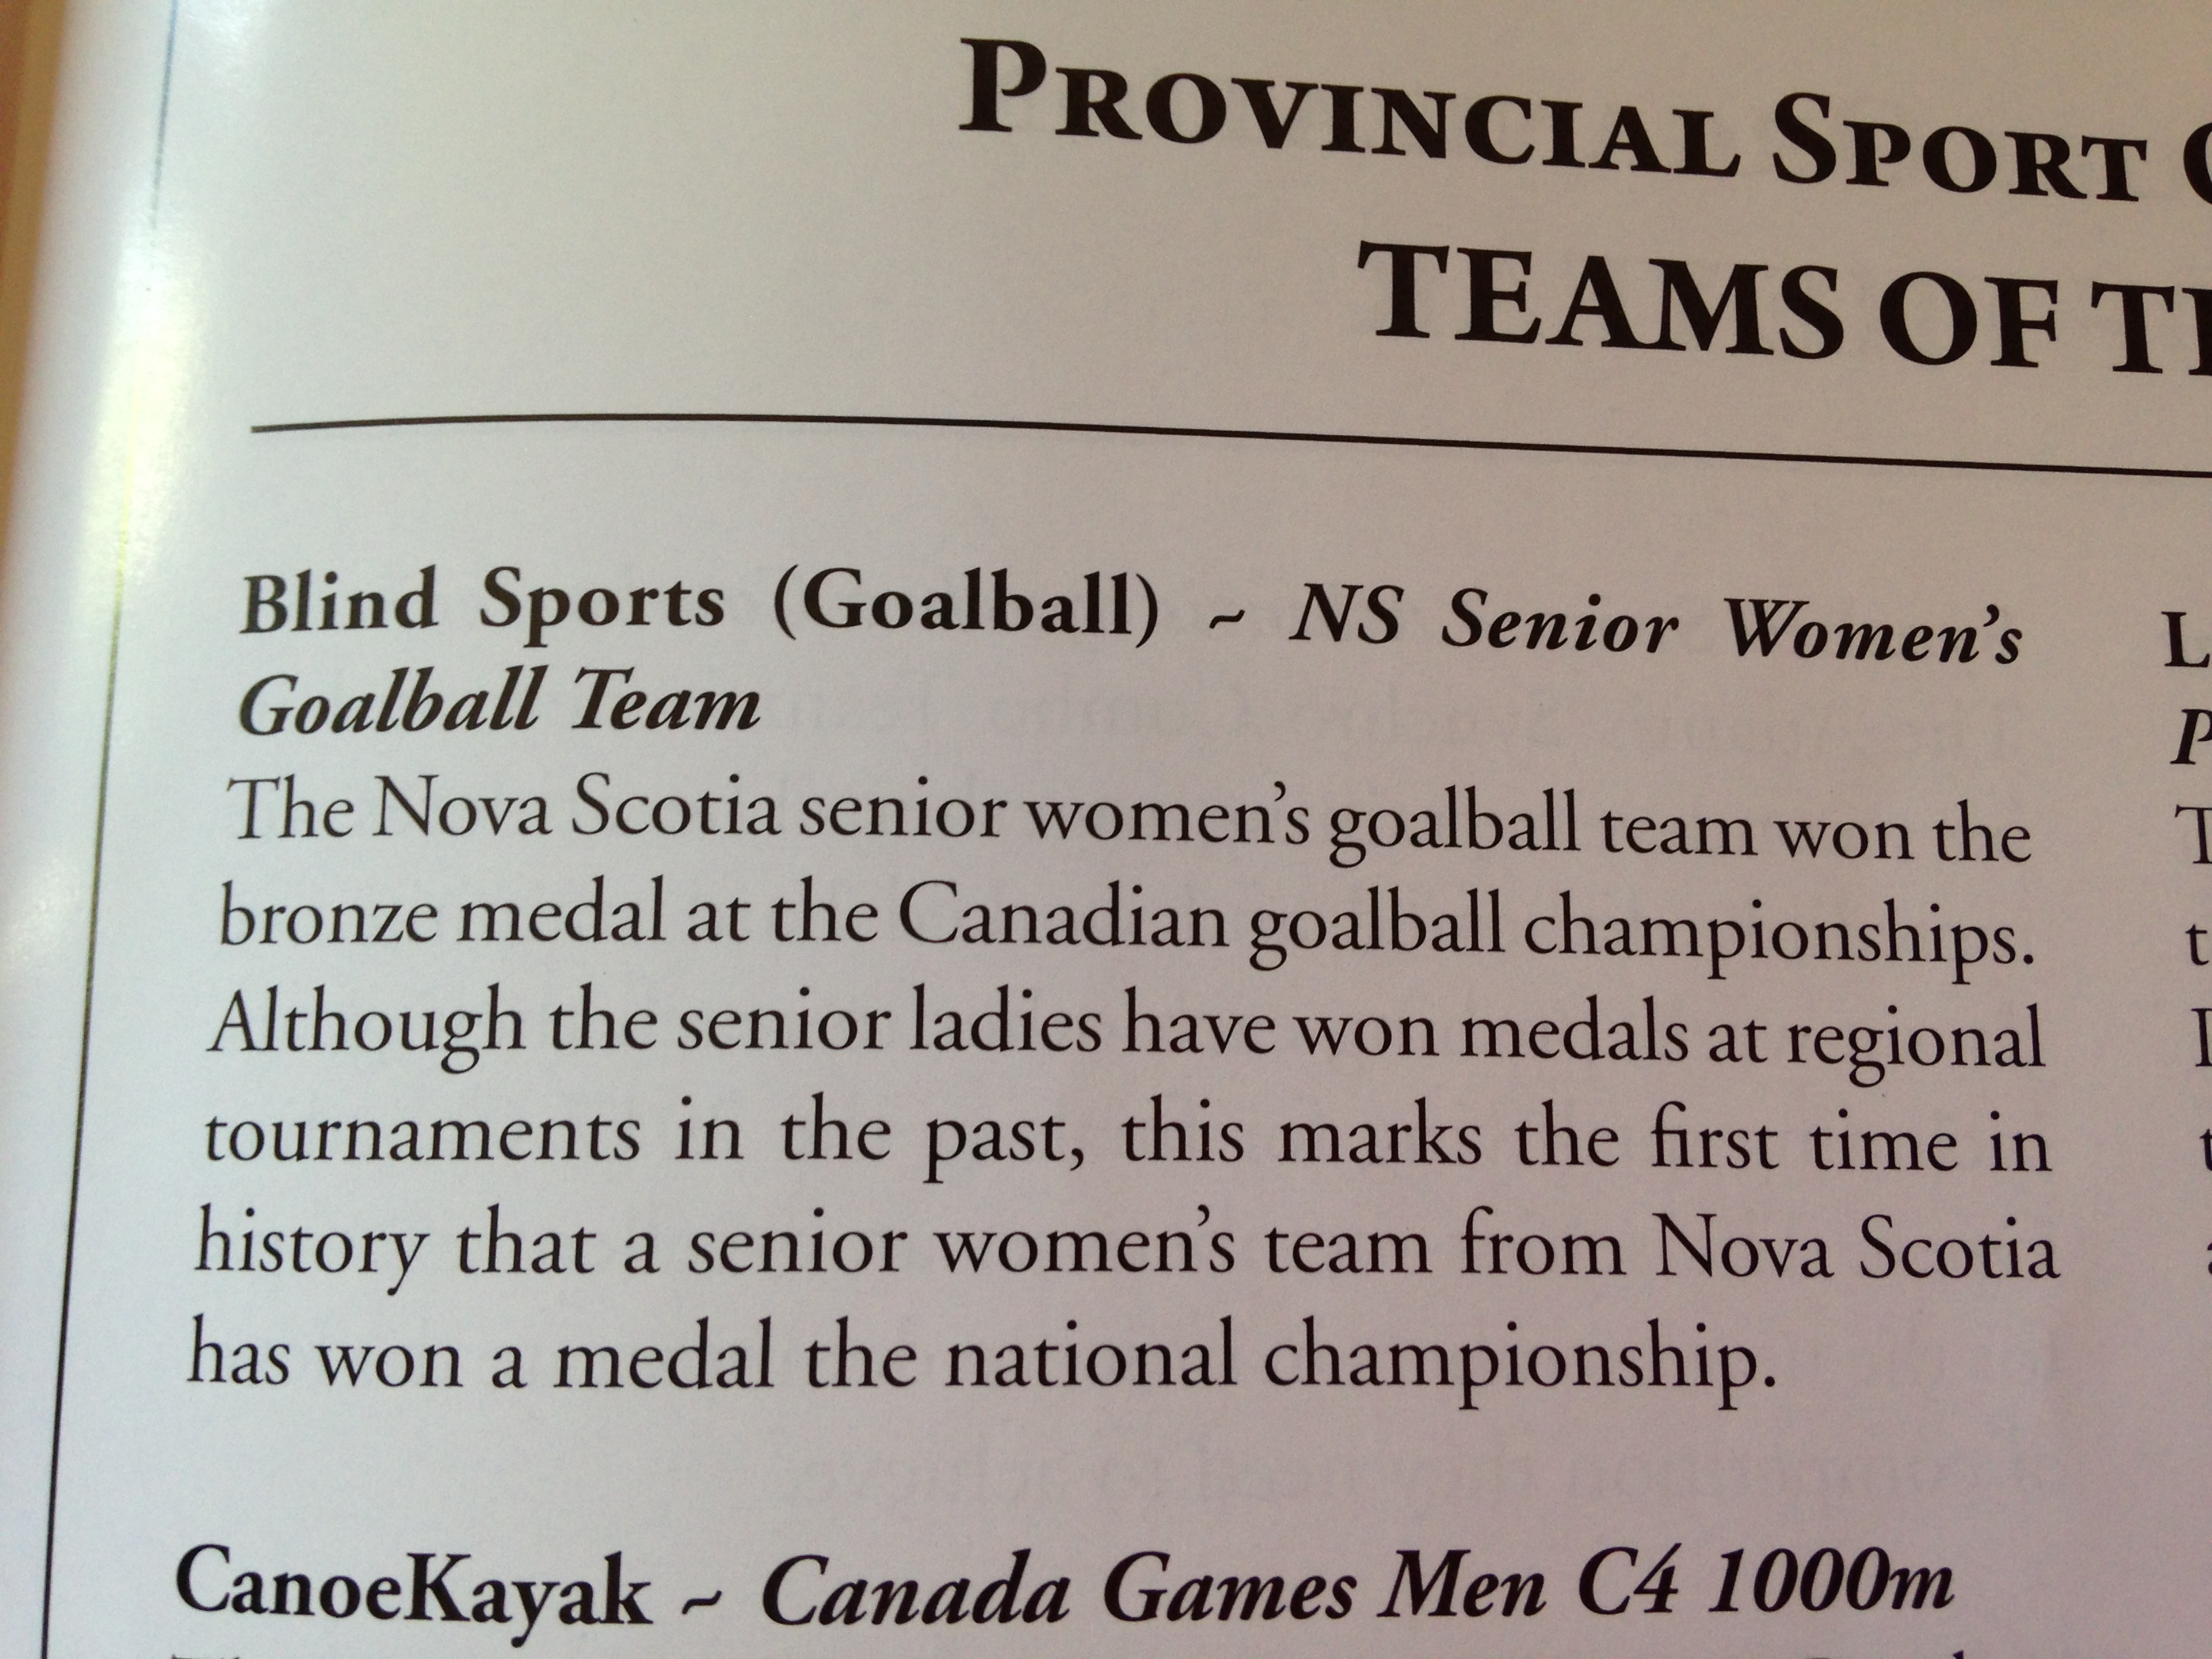 The Nova Scotia senior women's goalball team won the bronze medal at the Canadian goalball championships. Although the senior ladies have won medals at regional tournaments in the past, this marks the first time in history that a senior women's team from Nova Scotia has won a medal at the national championship. — with Stephanie Berry, Nancy Morin, Tarah Sawler and Jennie Bovard in Halifax, Nova Scotia.